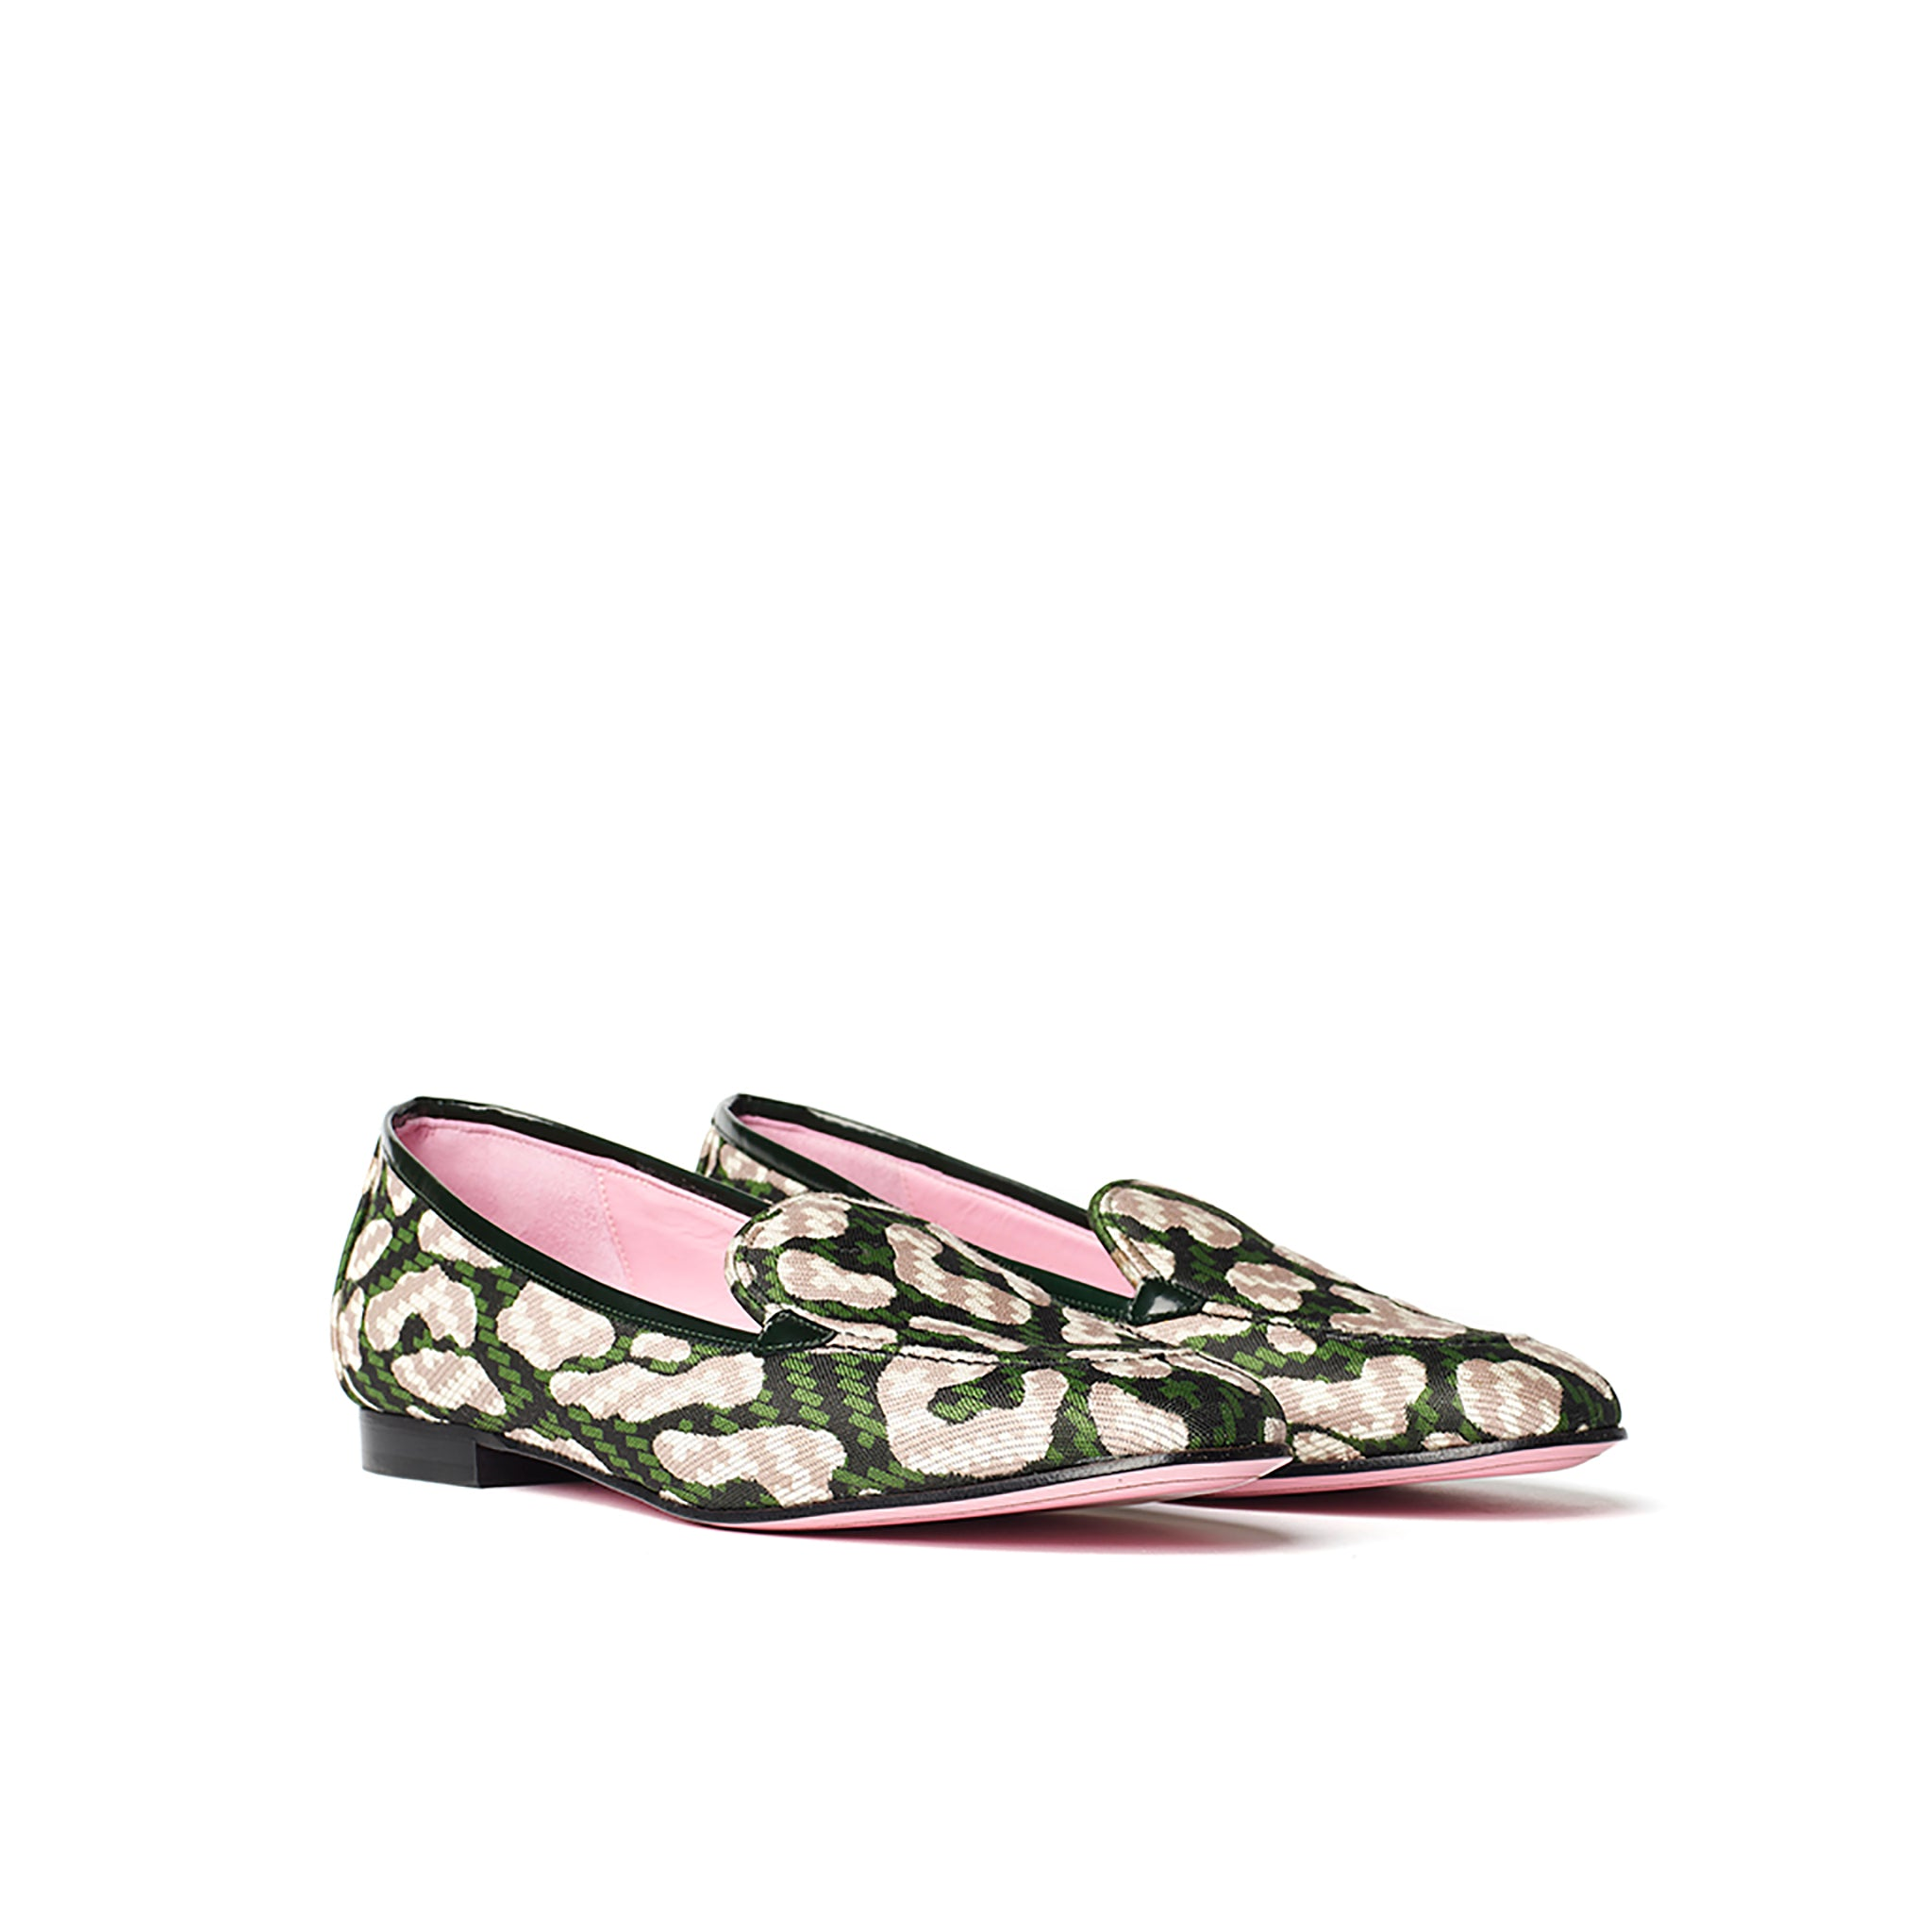 Phare classic loafer in dark green leopard jacquard 3.4 view